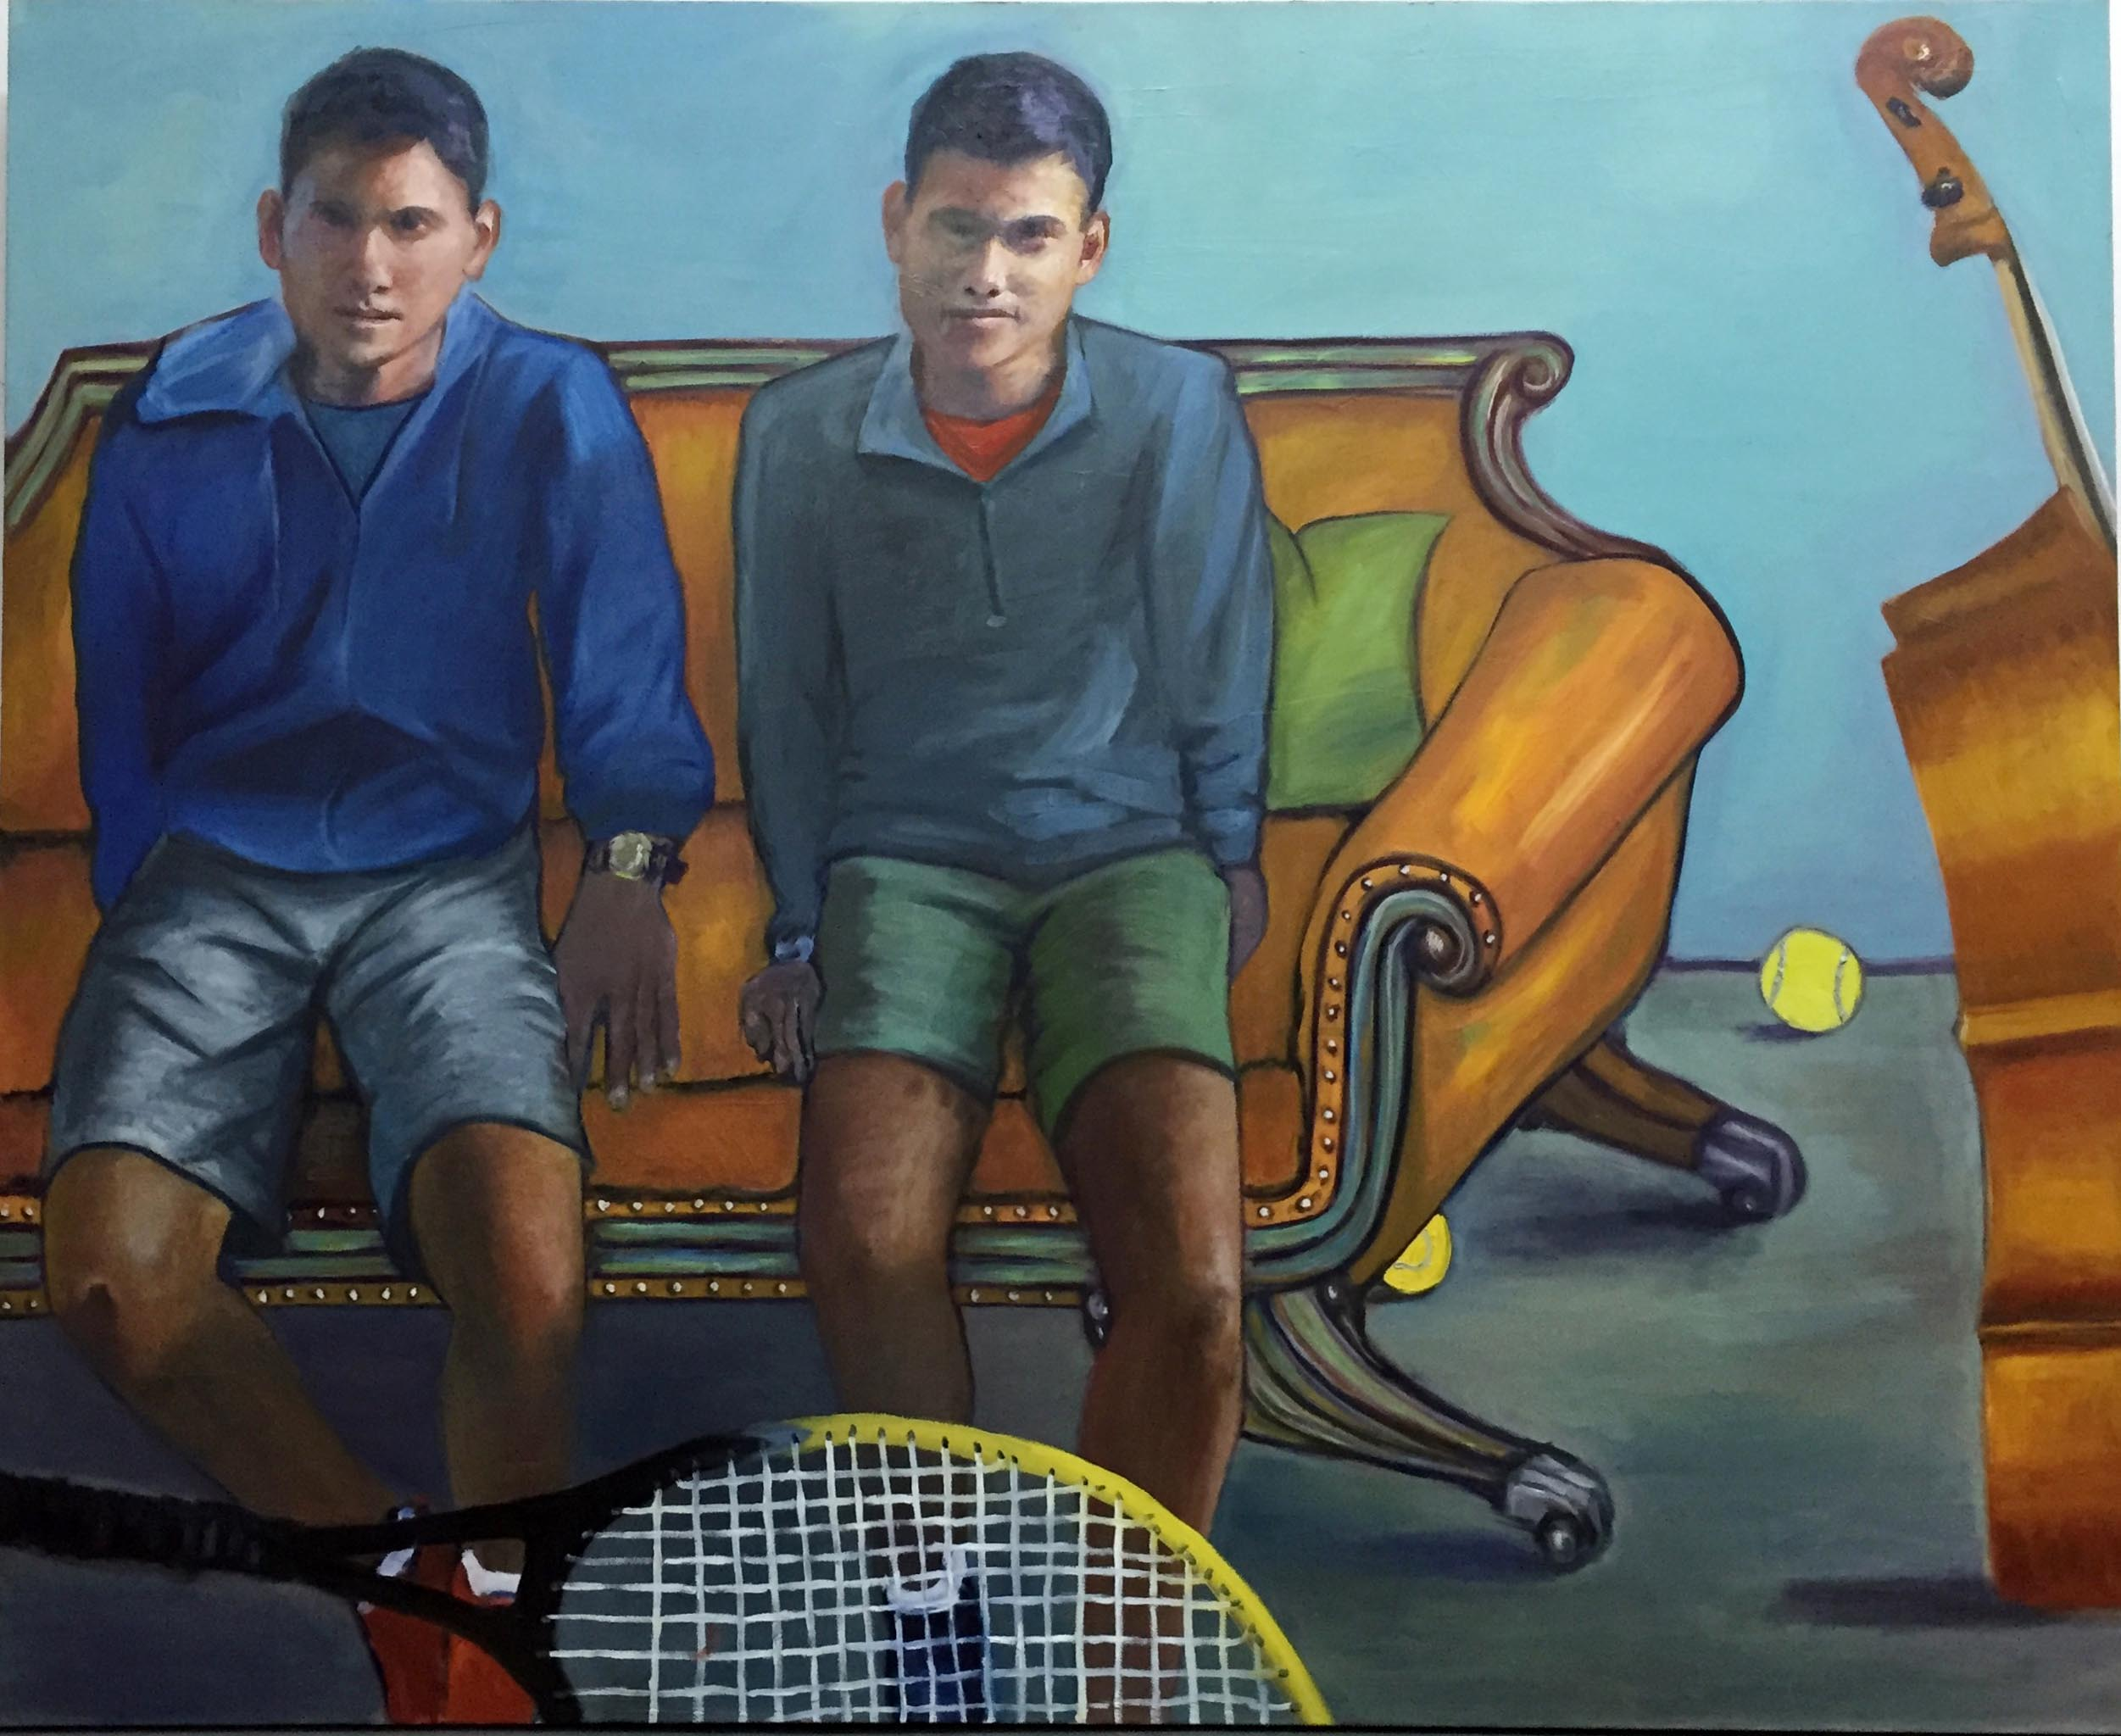 Twins by Jessica Alazraki, 2016, Oil on Canvas, 48x60 inches, sold